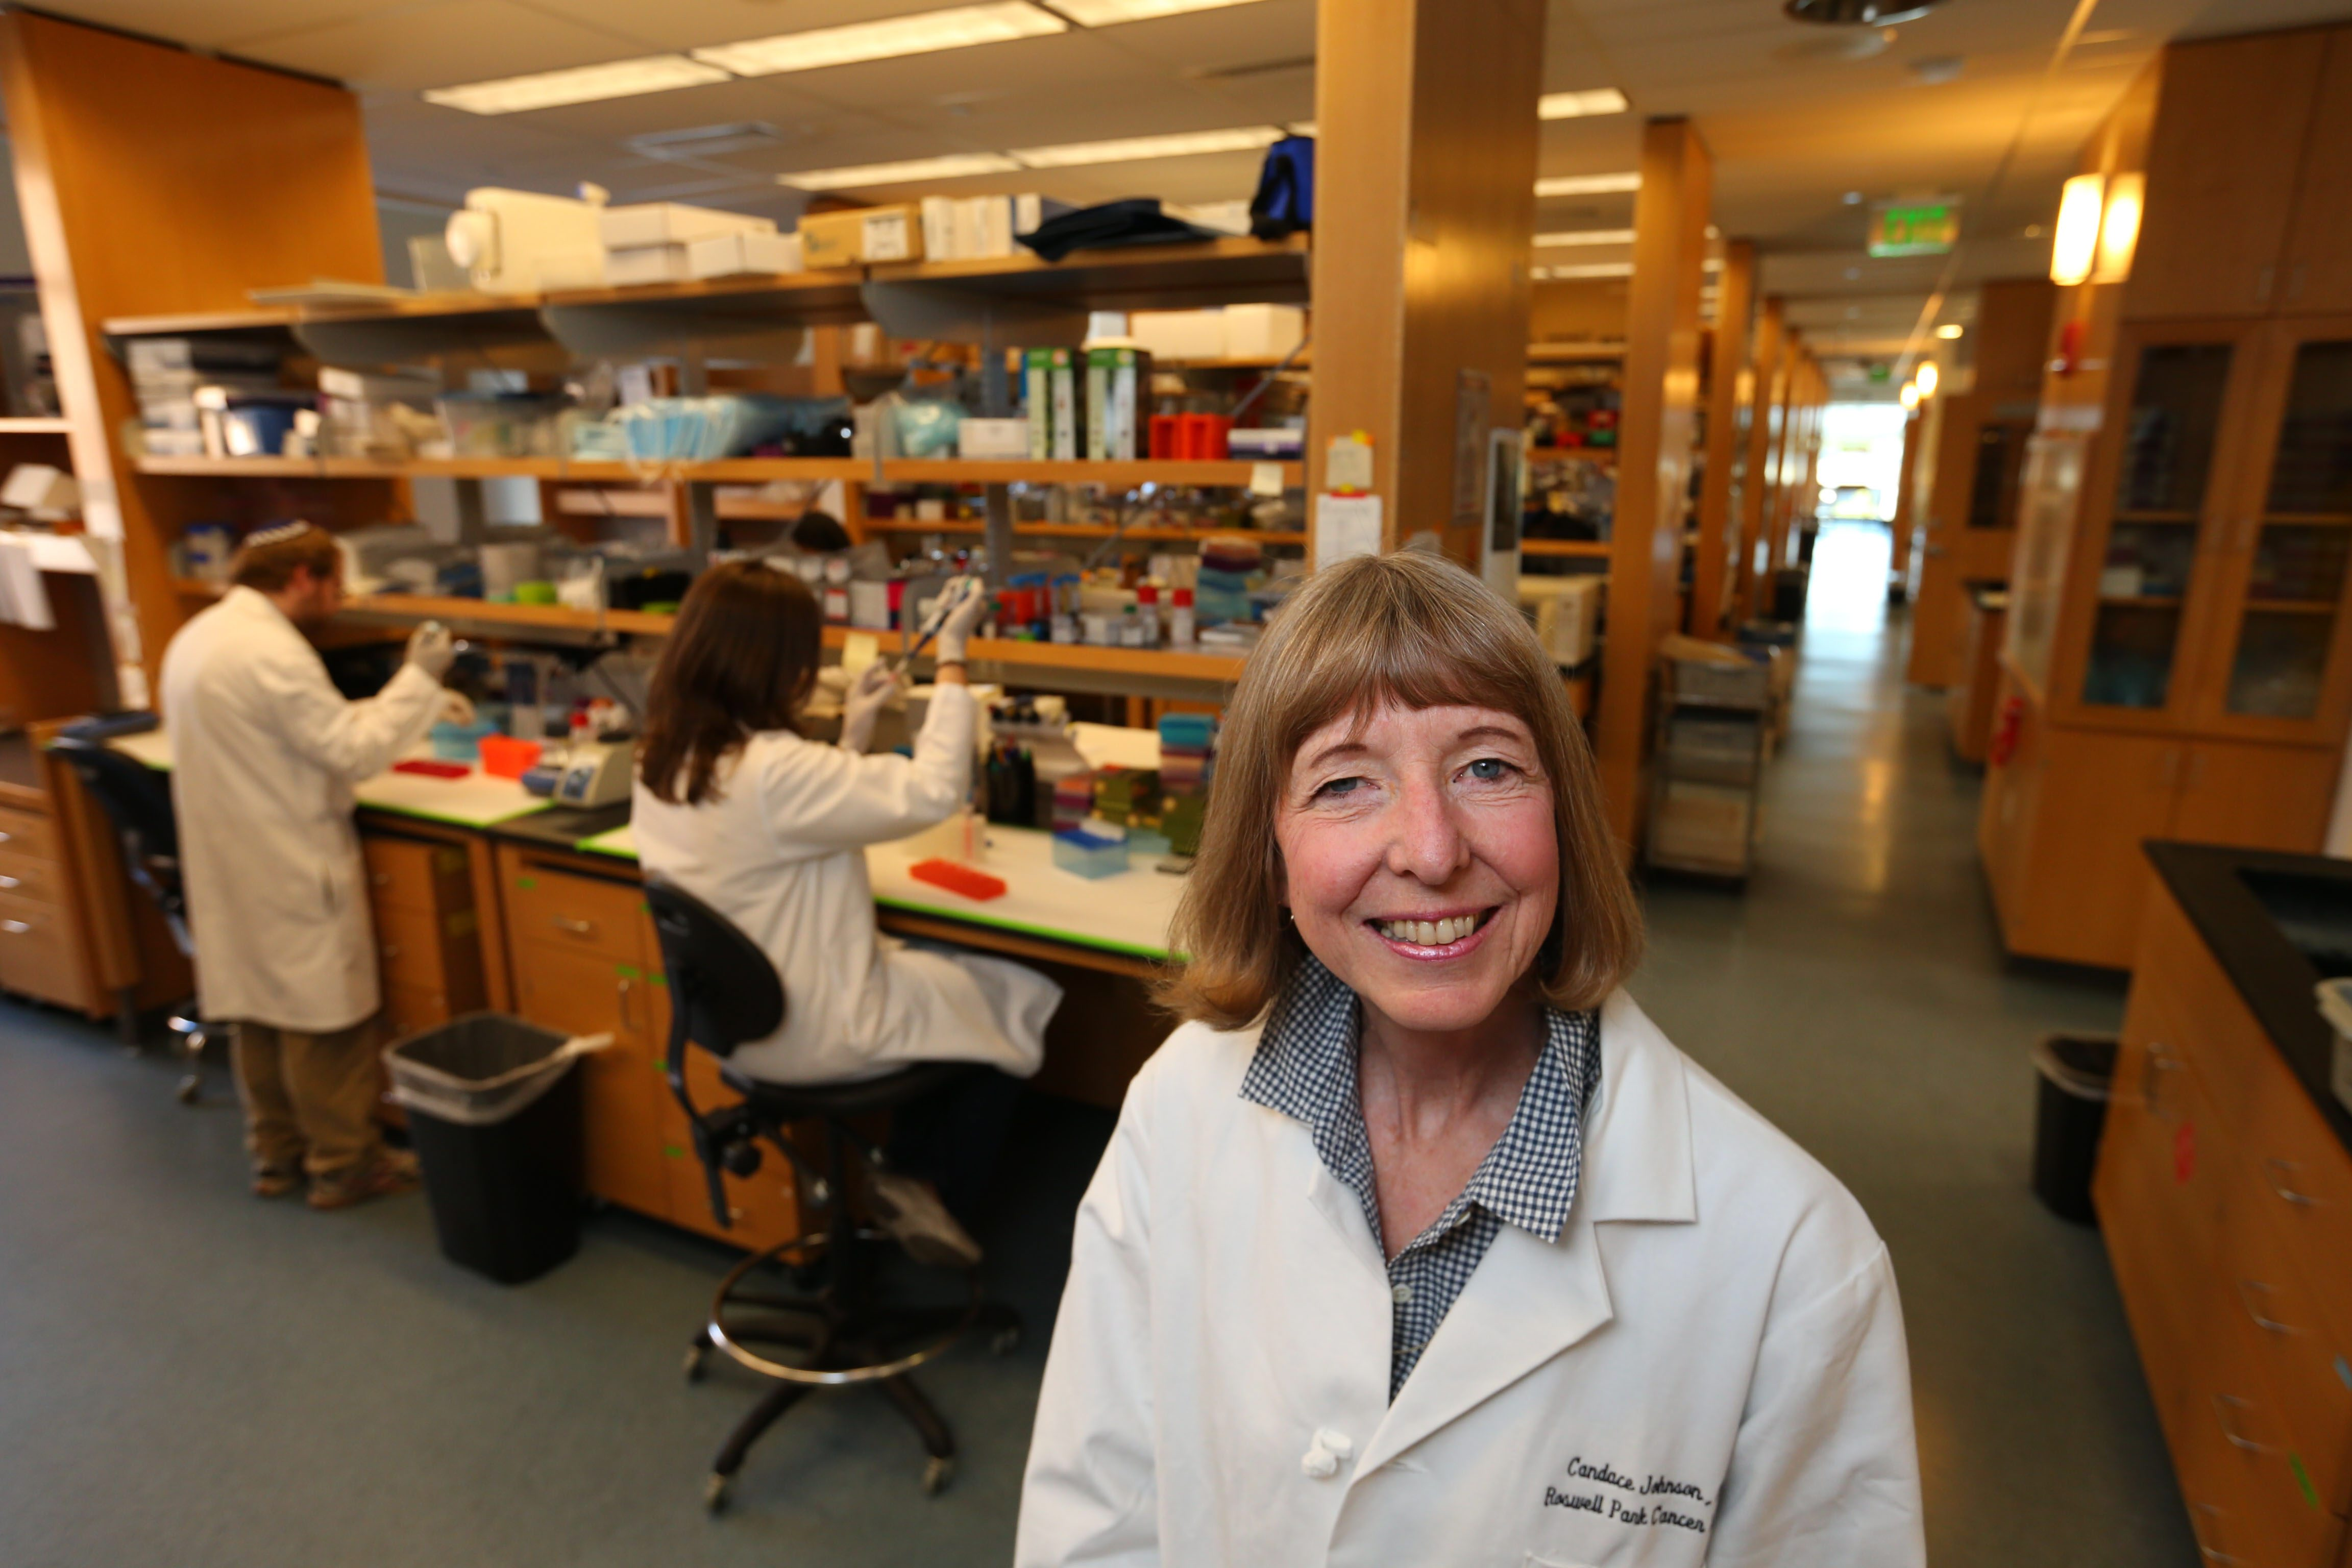 Dr. Candace Johnson in the lab area of the Center for Personalized Medicine at Roswell Park Cancer Institute in Buffalo.   (Mark Mulville/Buffalo News file photo)